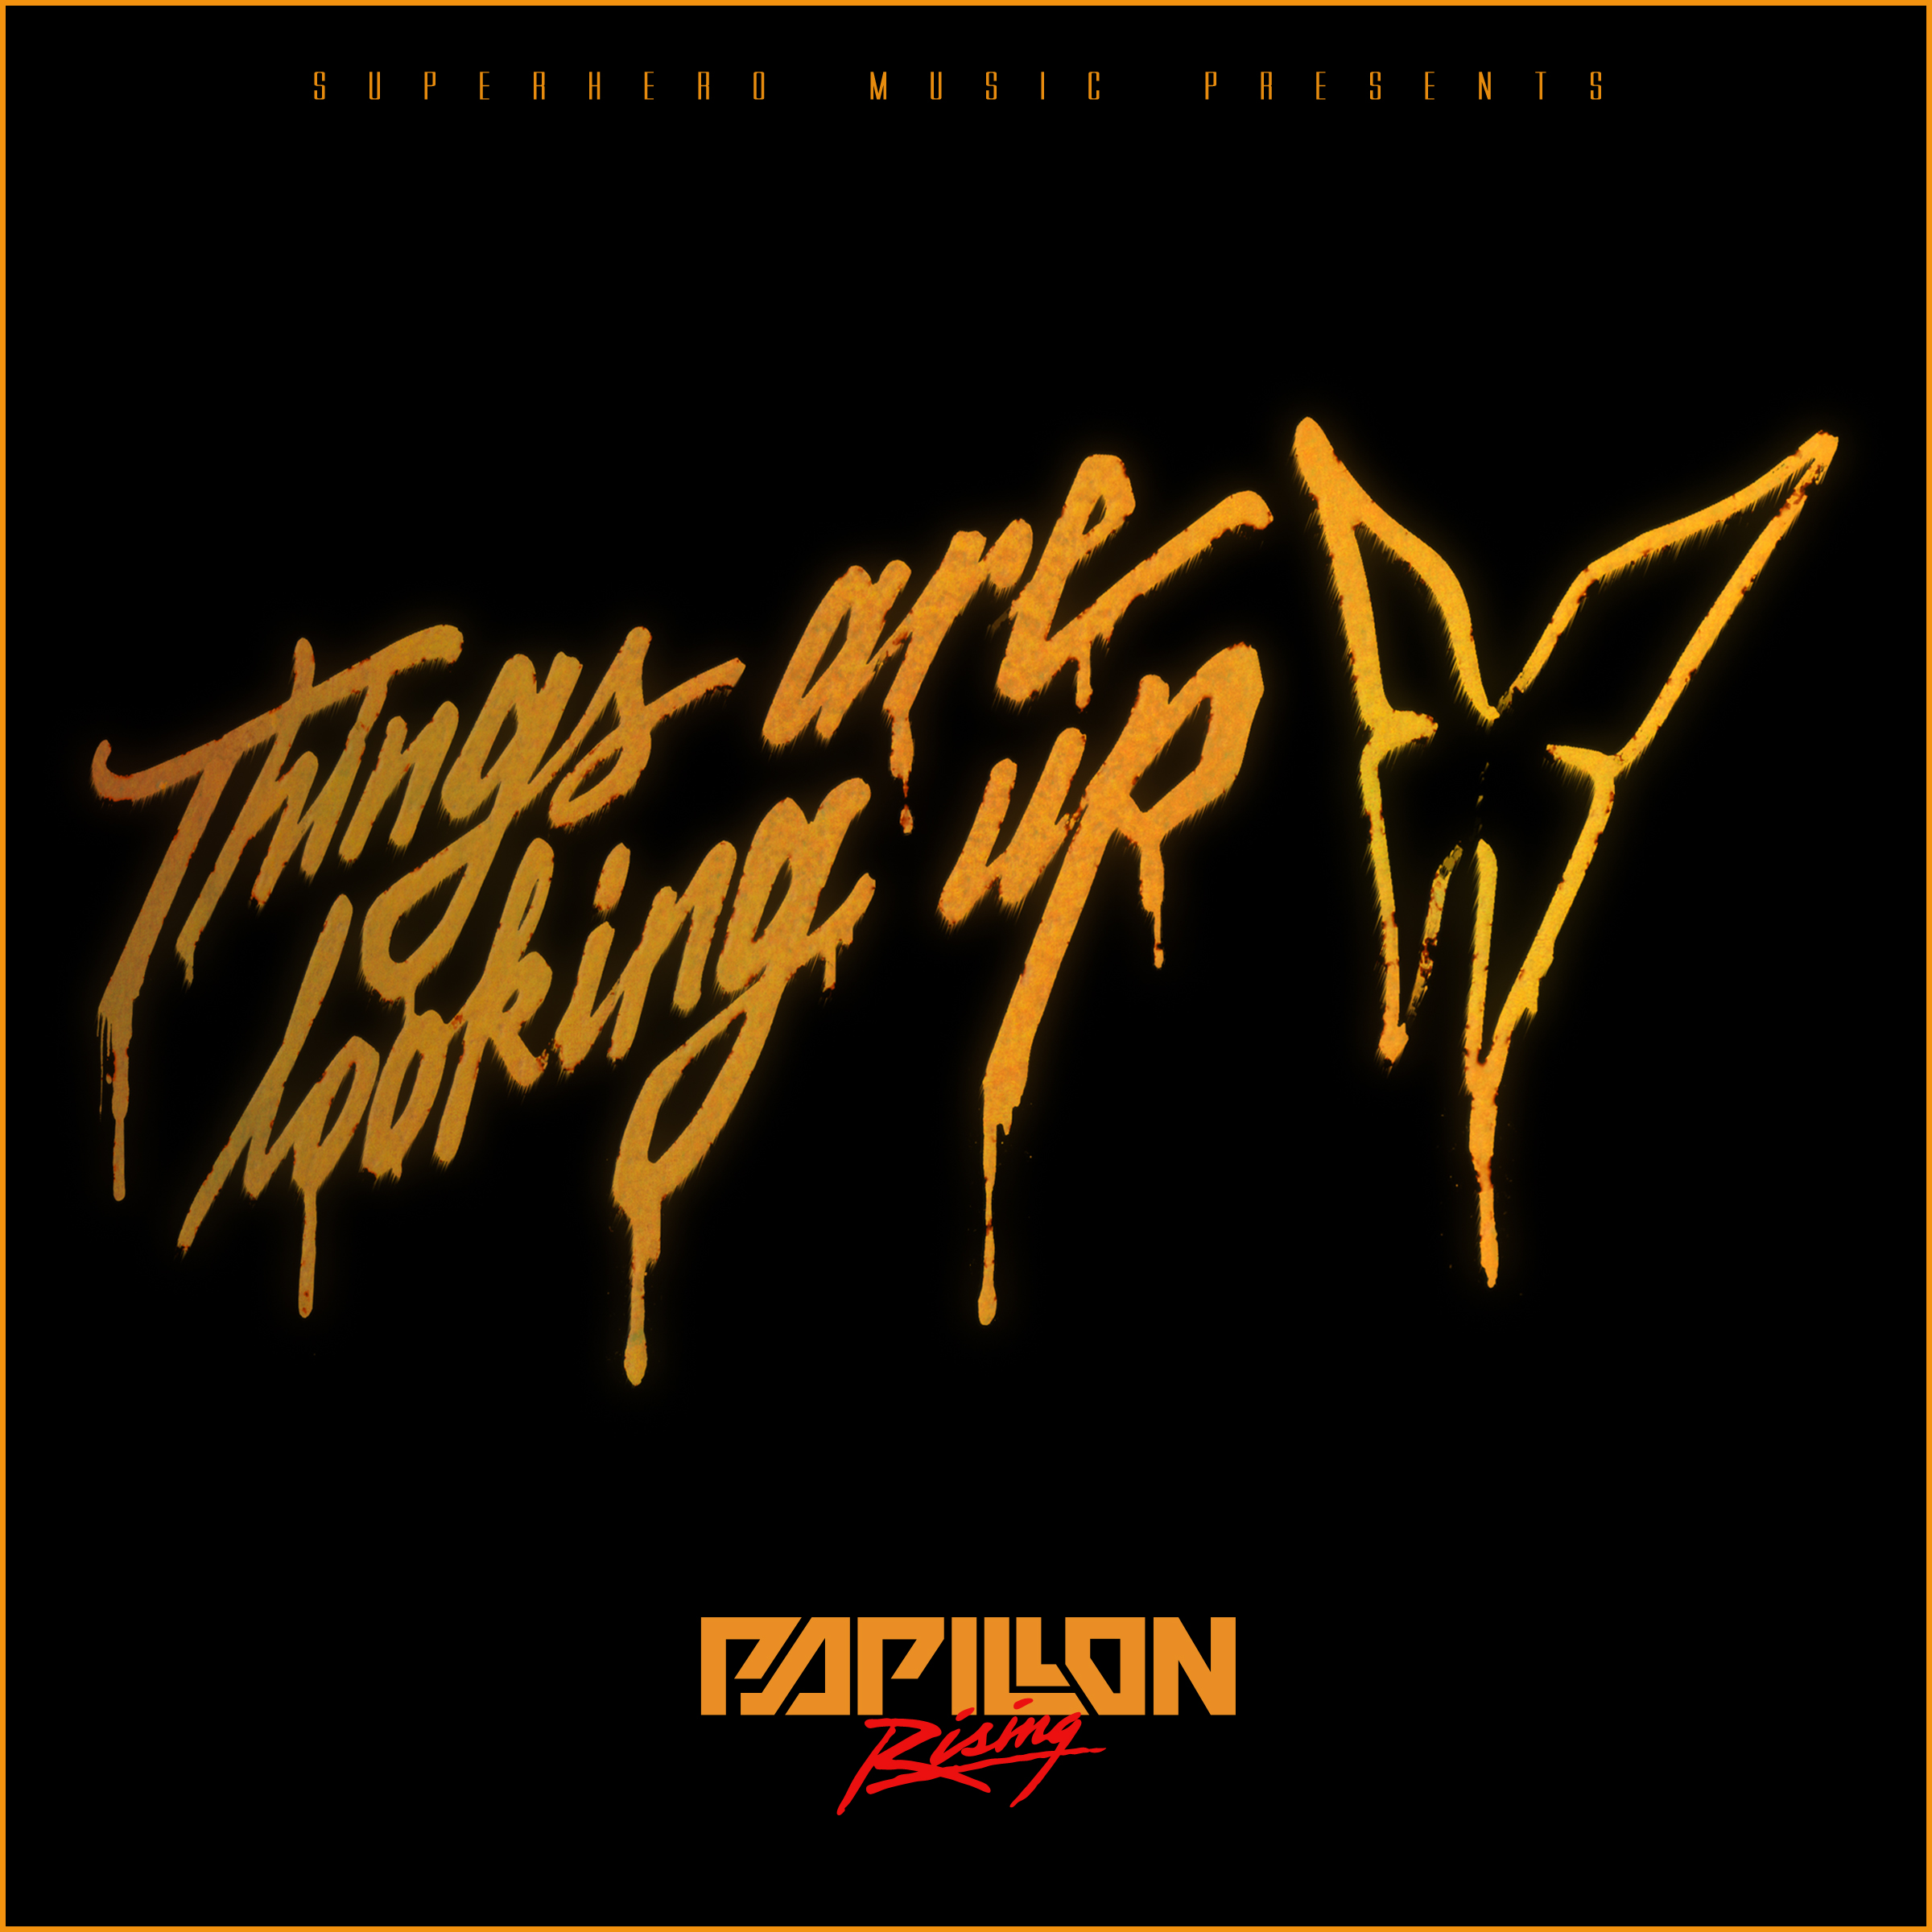 Papillon Rising - Things Are Looking Up